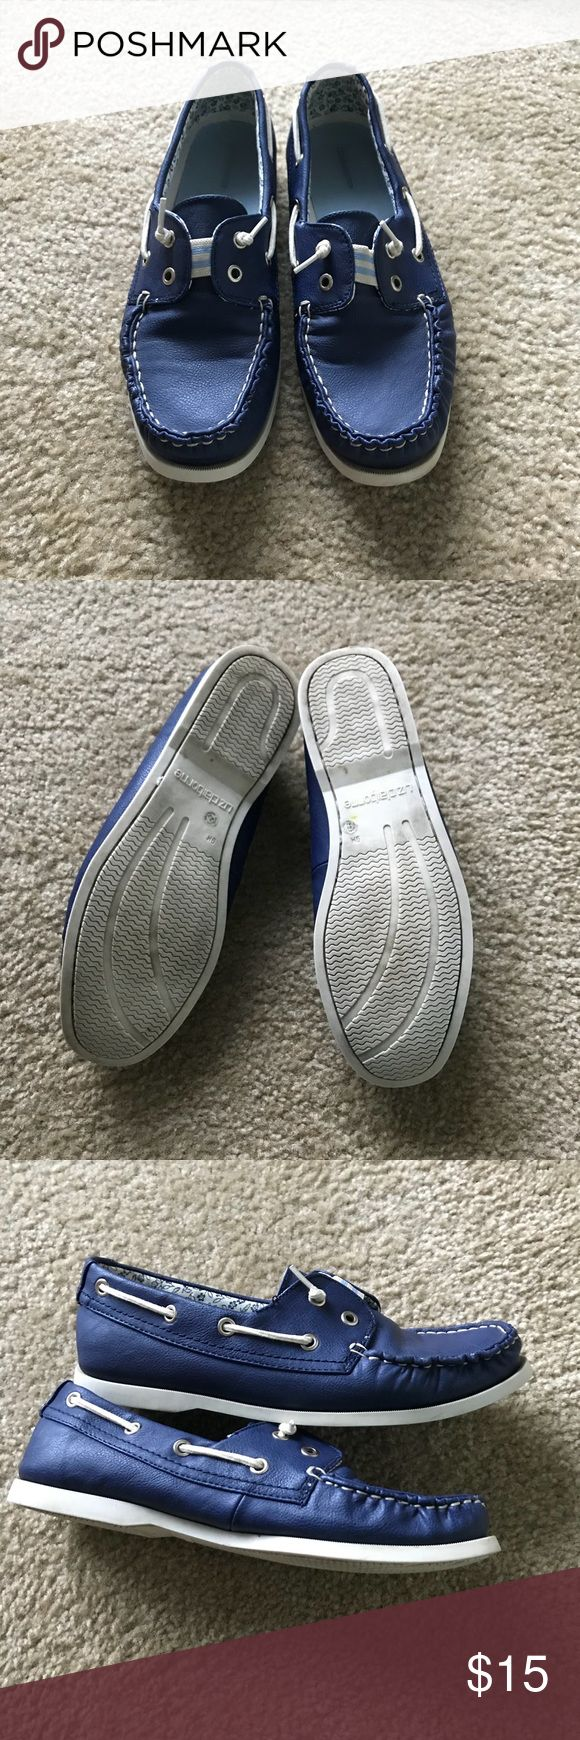 Liz Claiborne blue boat shoes size 9 Gently used Liz Claiborne blue boat shoes size 9 Super comfortable  🍩Offers welcome! Liz Claiborne Shoes Flats & Loafers